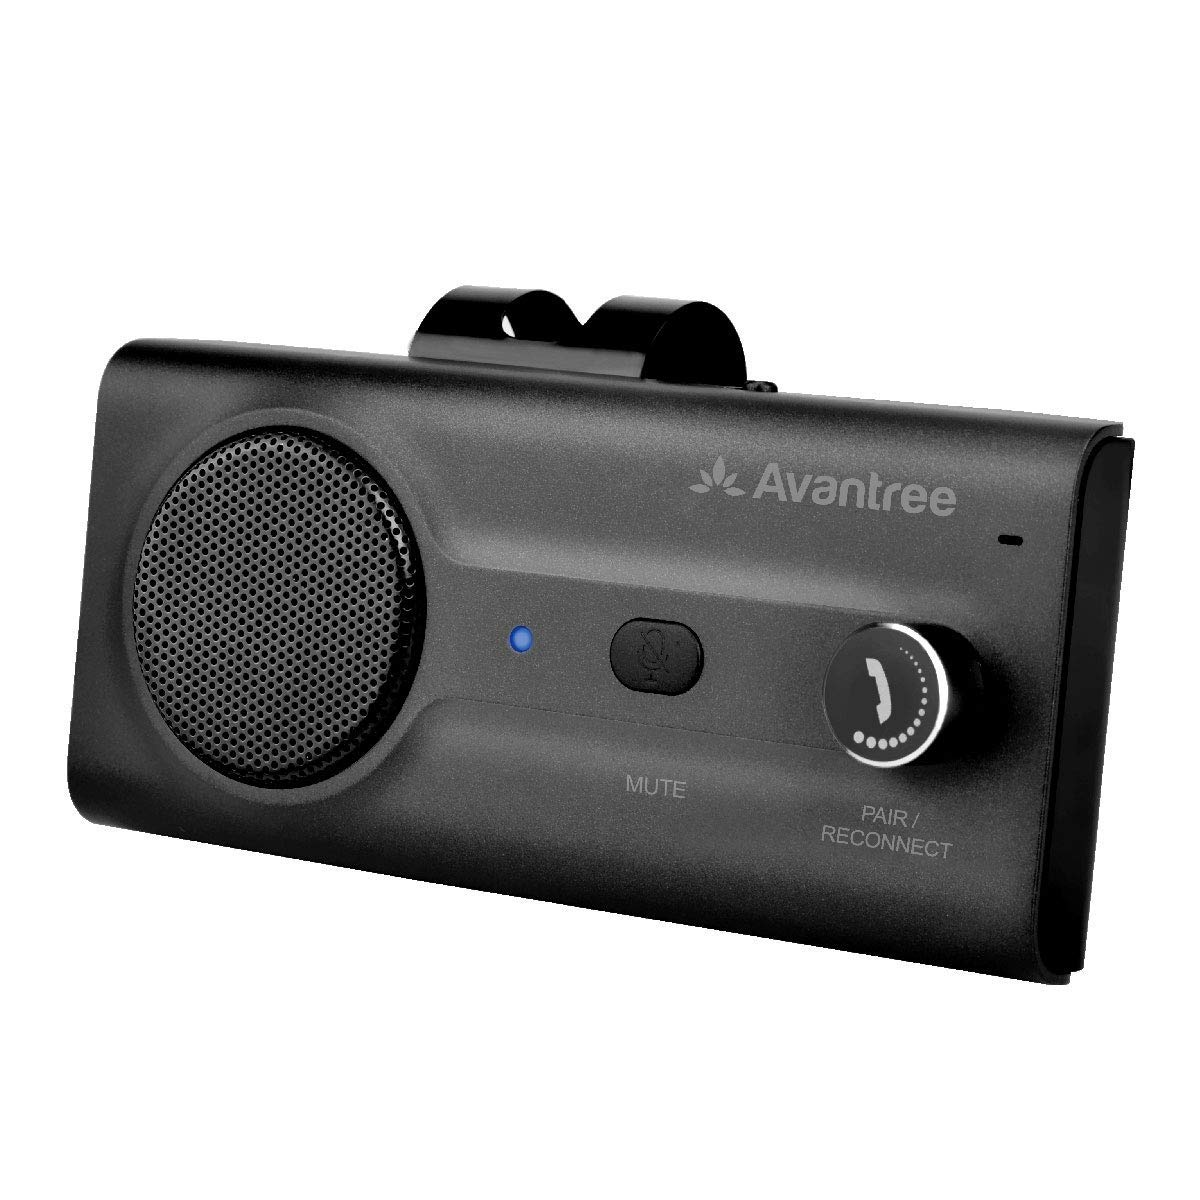 Avantree New CK11 Hands Free Bluetooth for Cell Phone Car Kit, Loud Speakerphone, Siri Google Assistant Support, Motion AUTO ON, Volume Knob, Wireless in Car Handsfree Speaker with Visor Clip - Black by Avantree